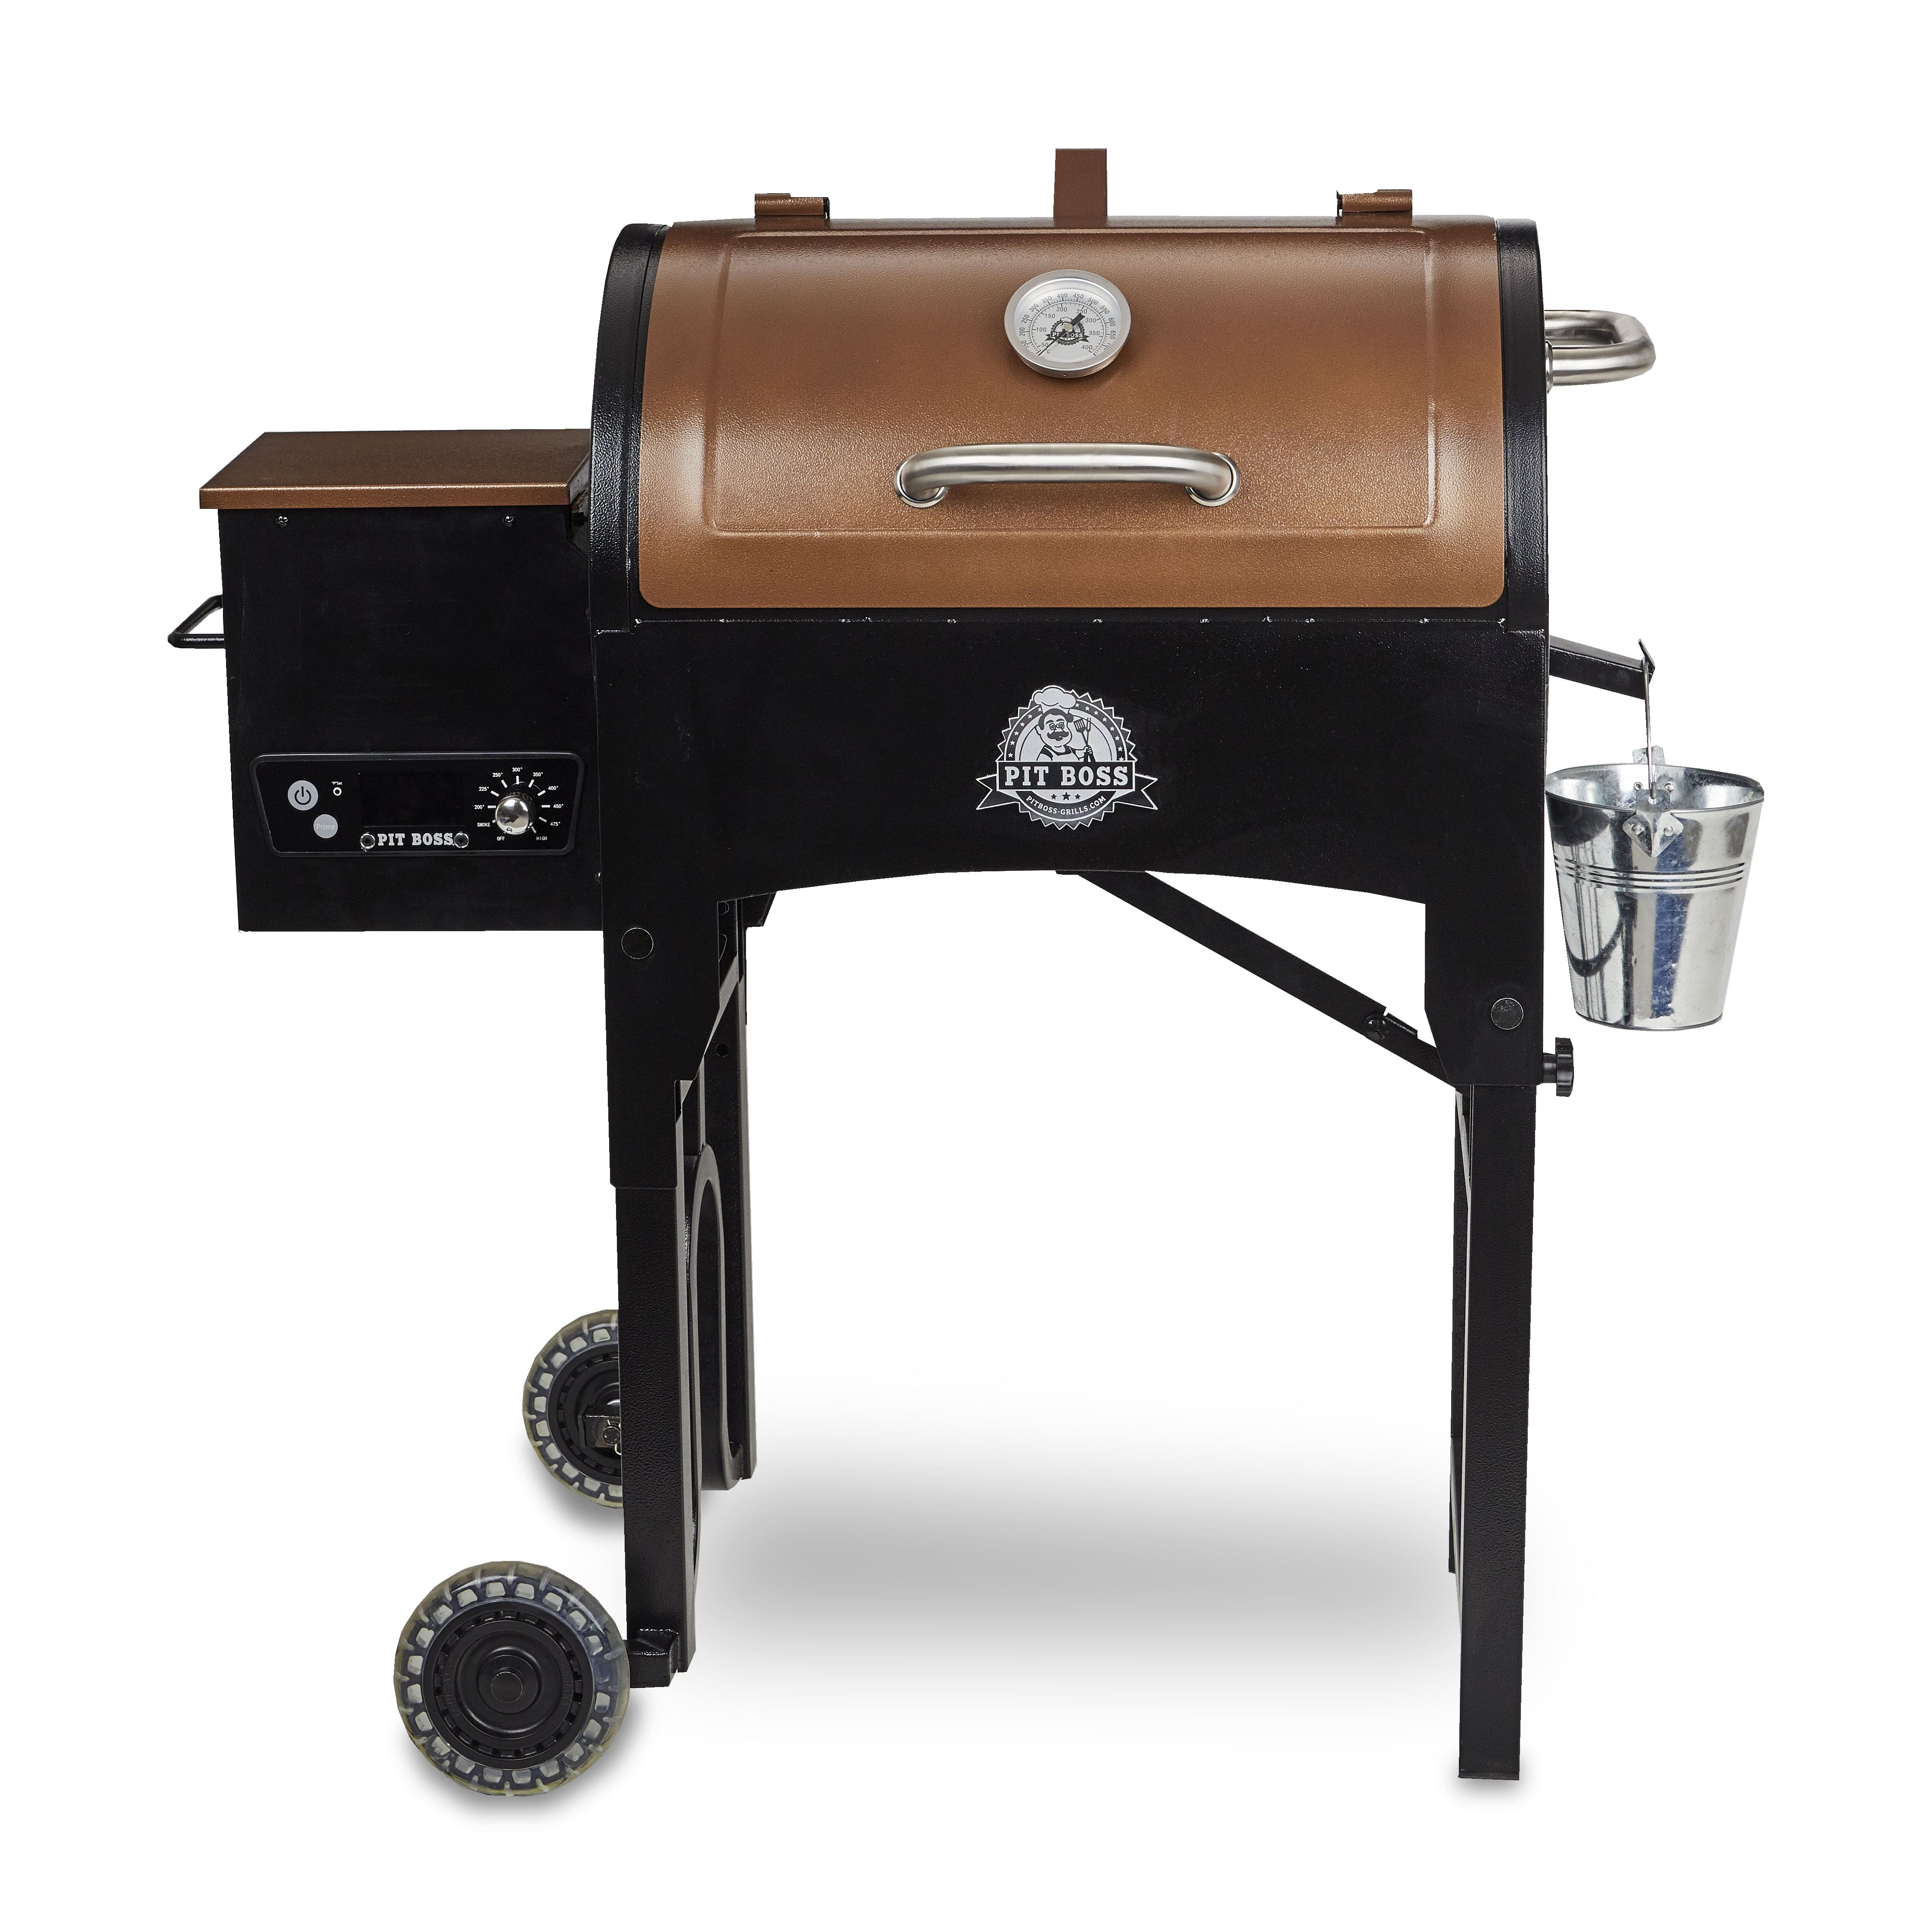 Pit Boss 340 Sq. In. Portable Tailgate, Camp Pellet Grill with Folding Legs – Walmart Inventory Checker – BrickSeek $154